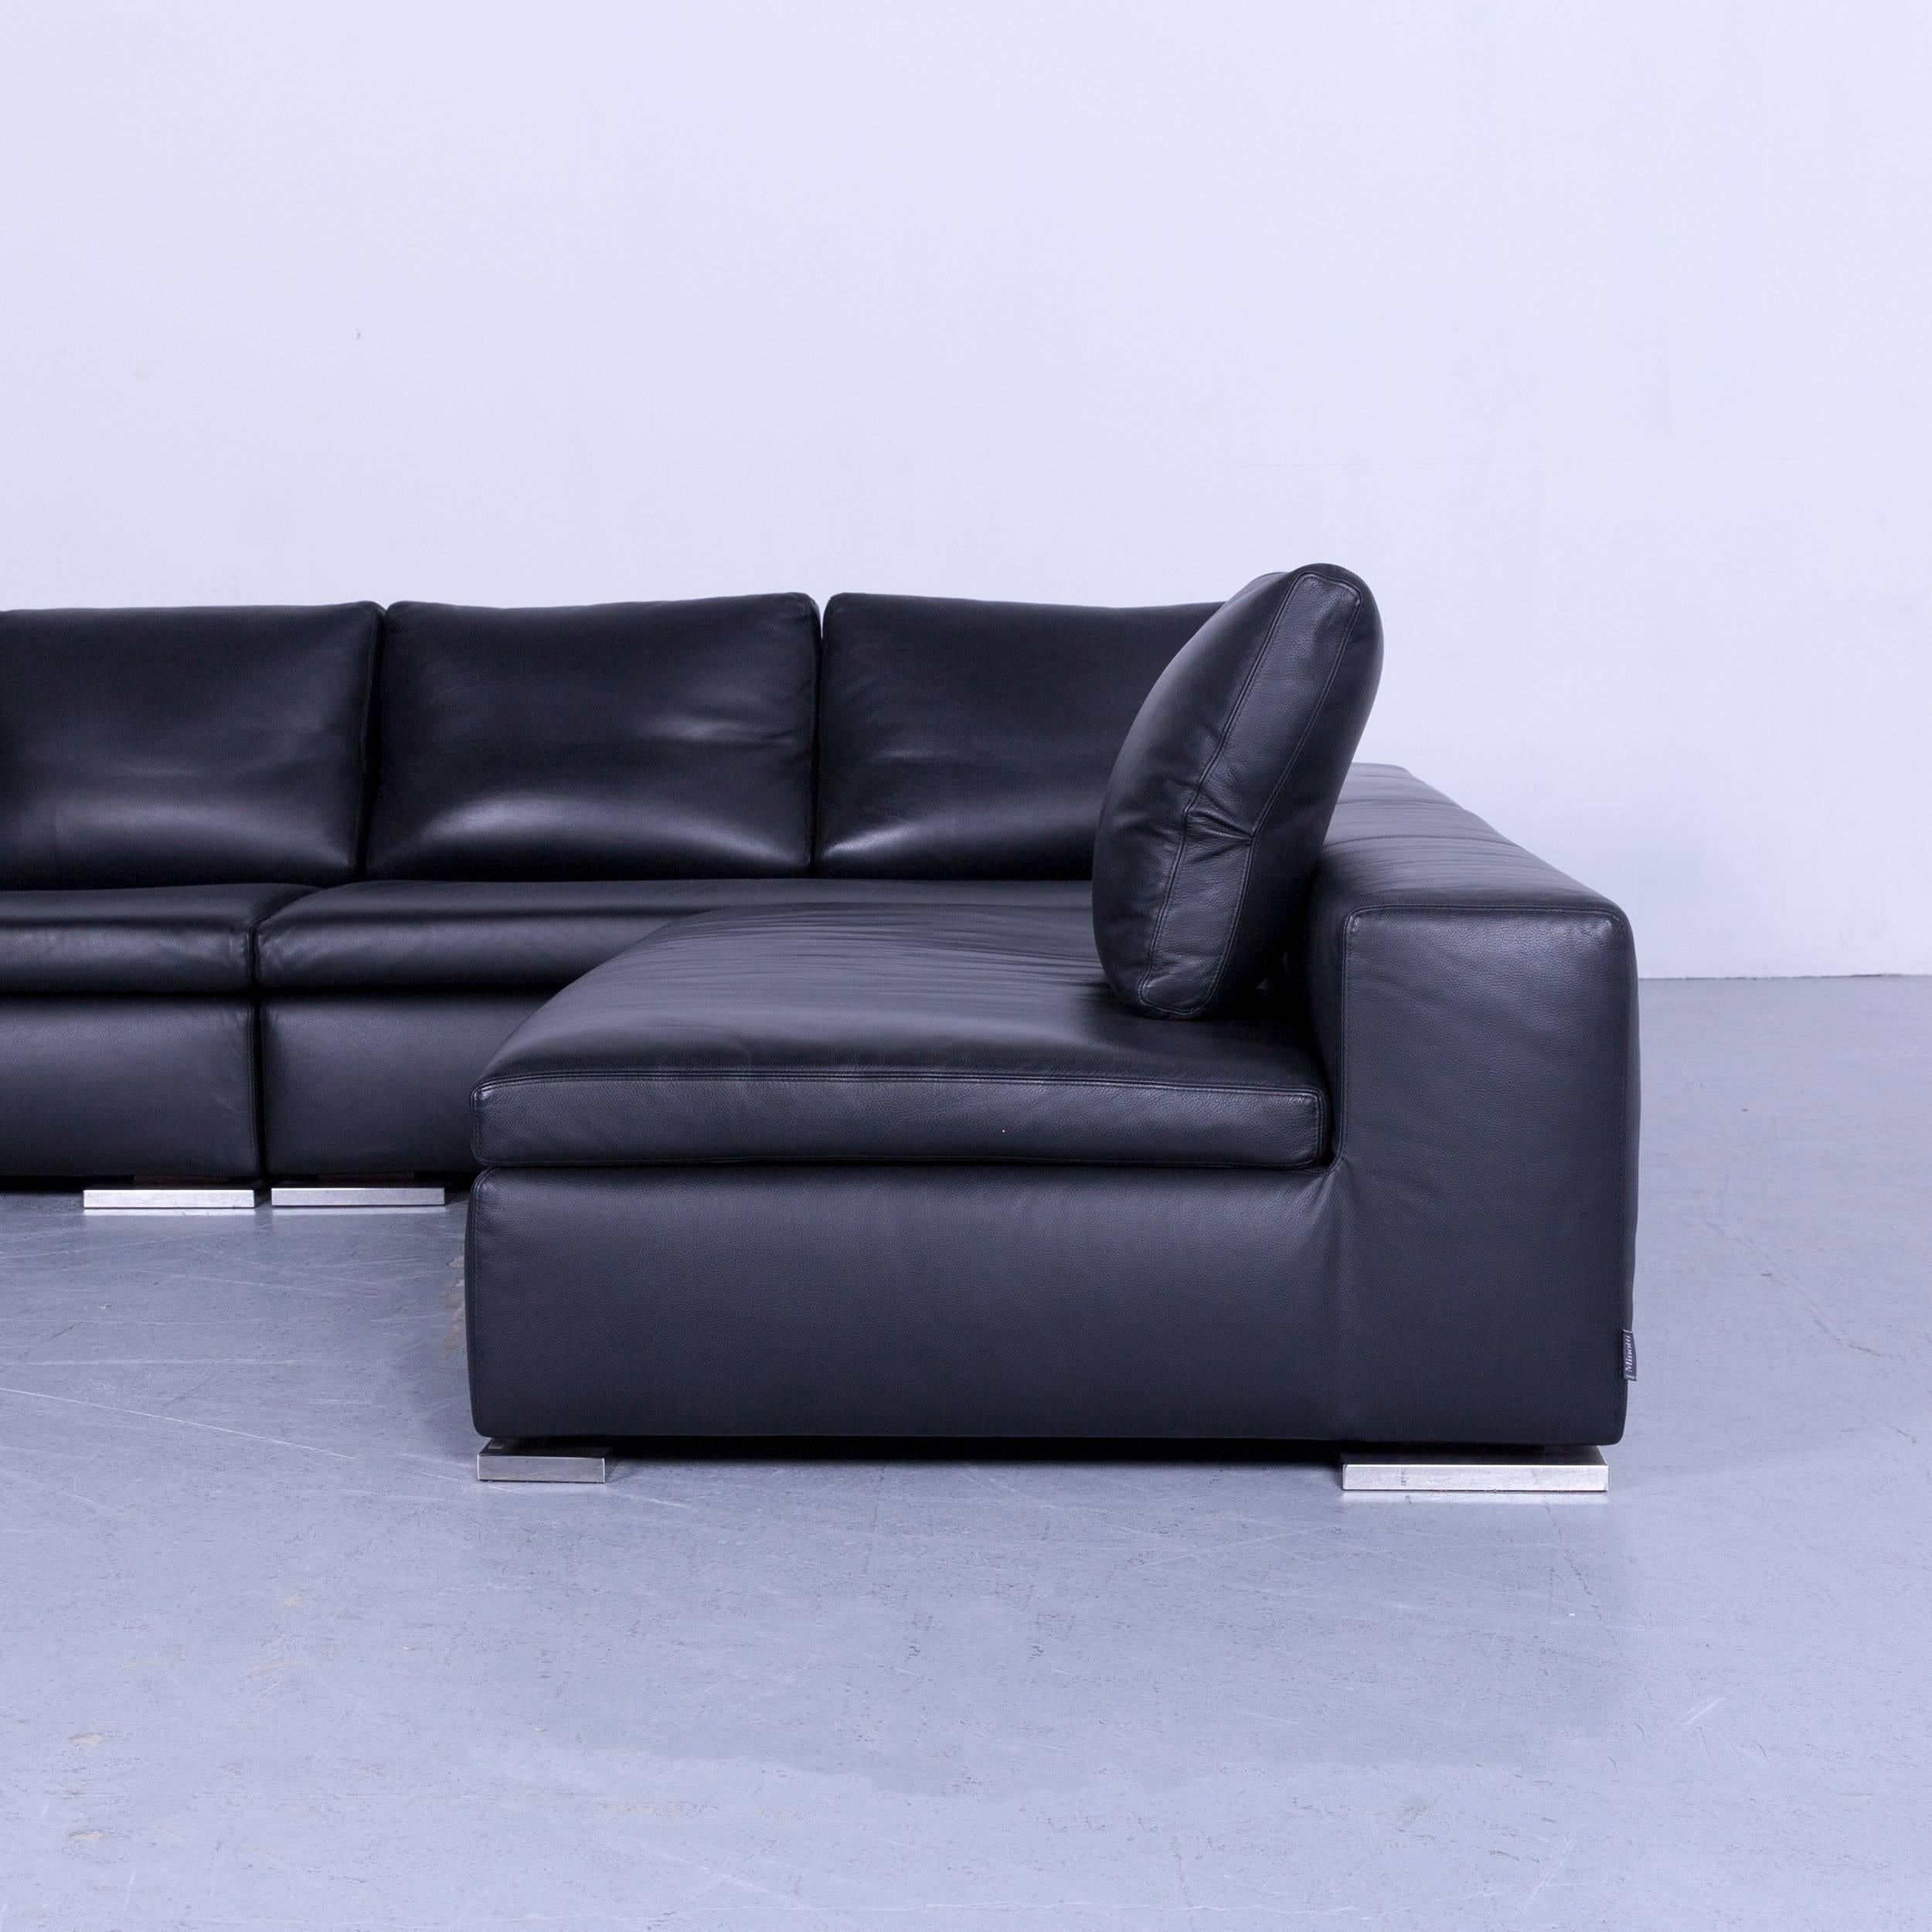 Italian Minotti Powell Designer Leather Corner Sofa Black Full Leather For  Sale